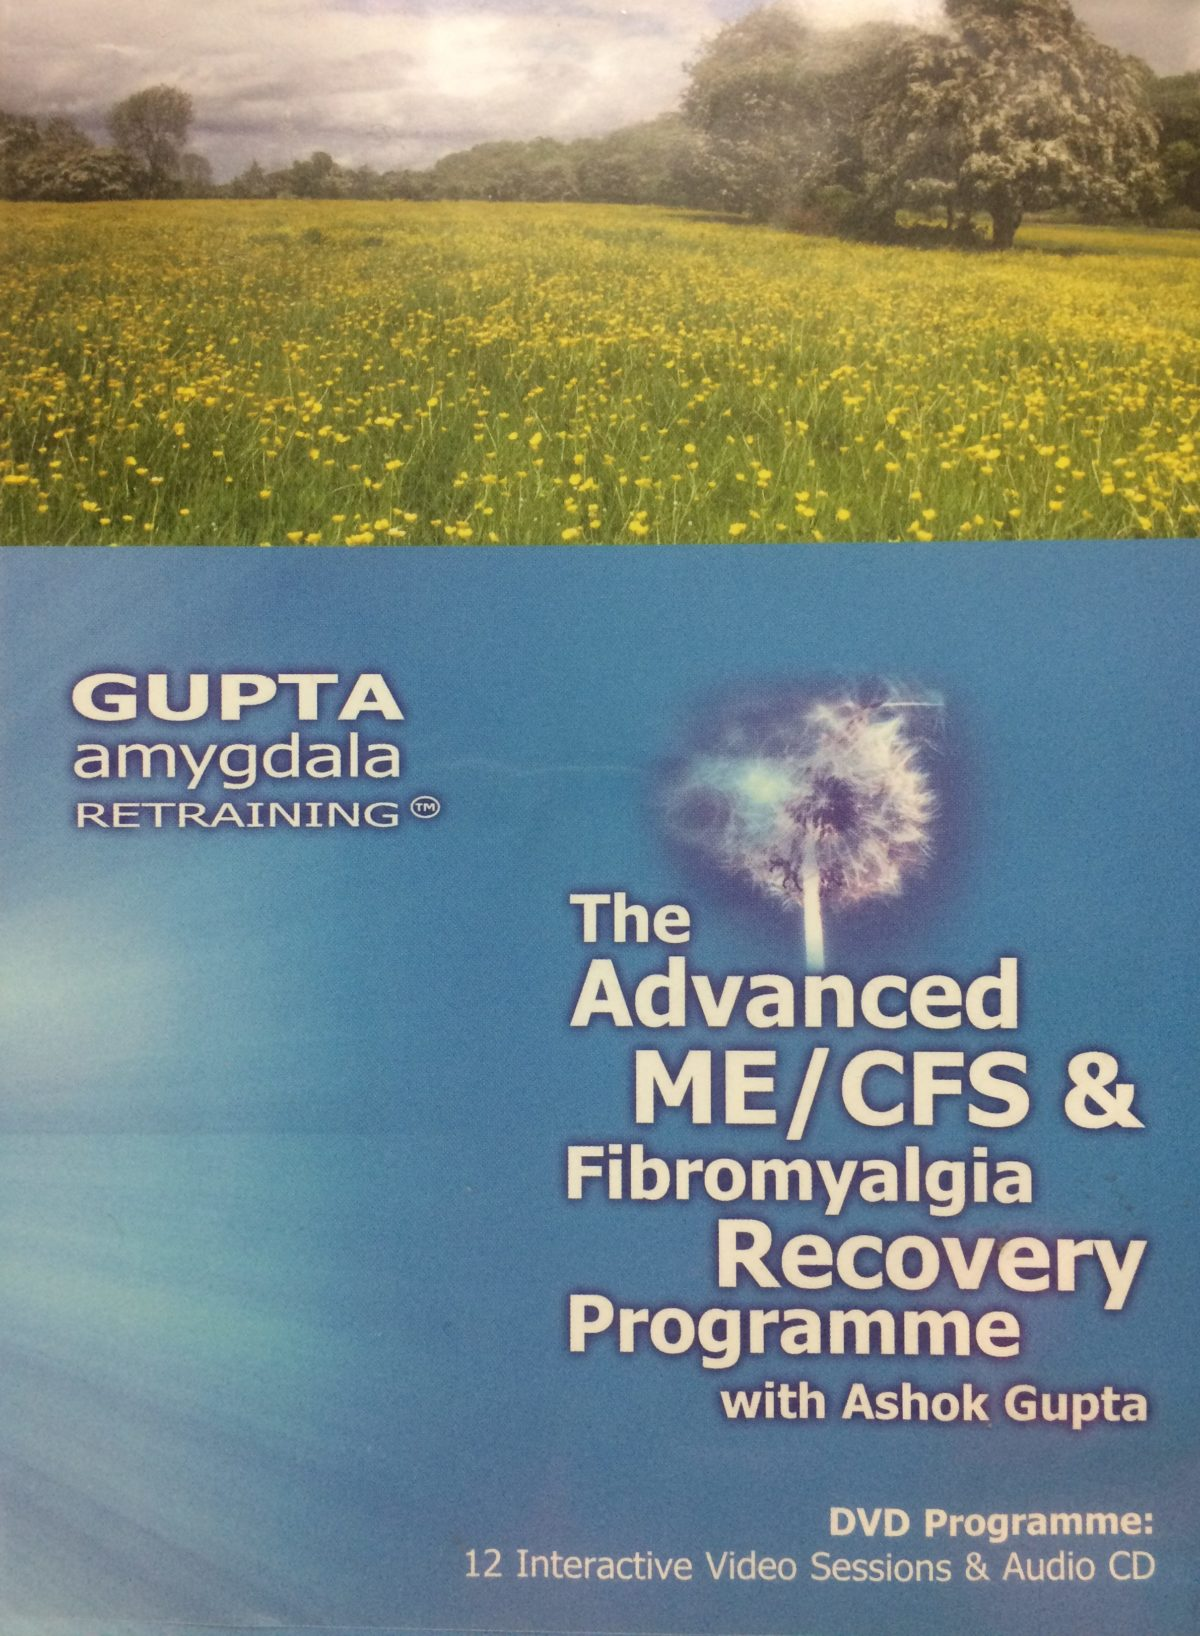 Is The Gupta Programme a 100% Cure?